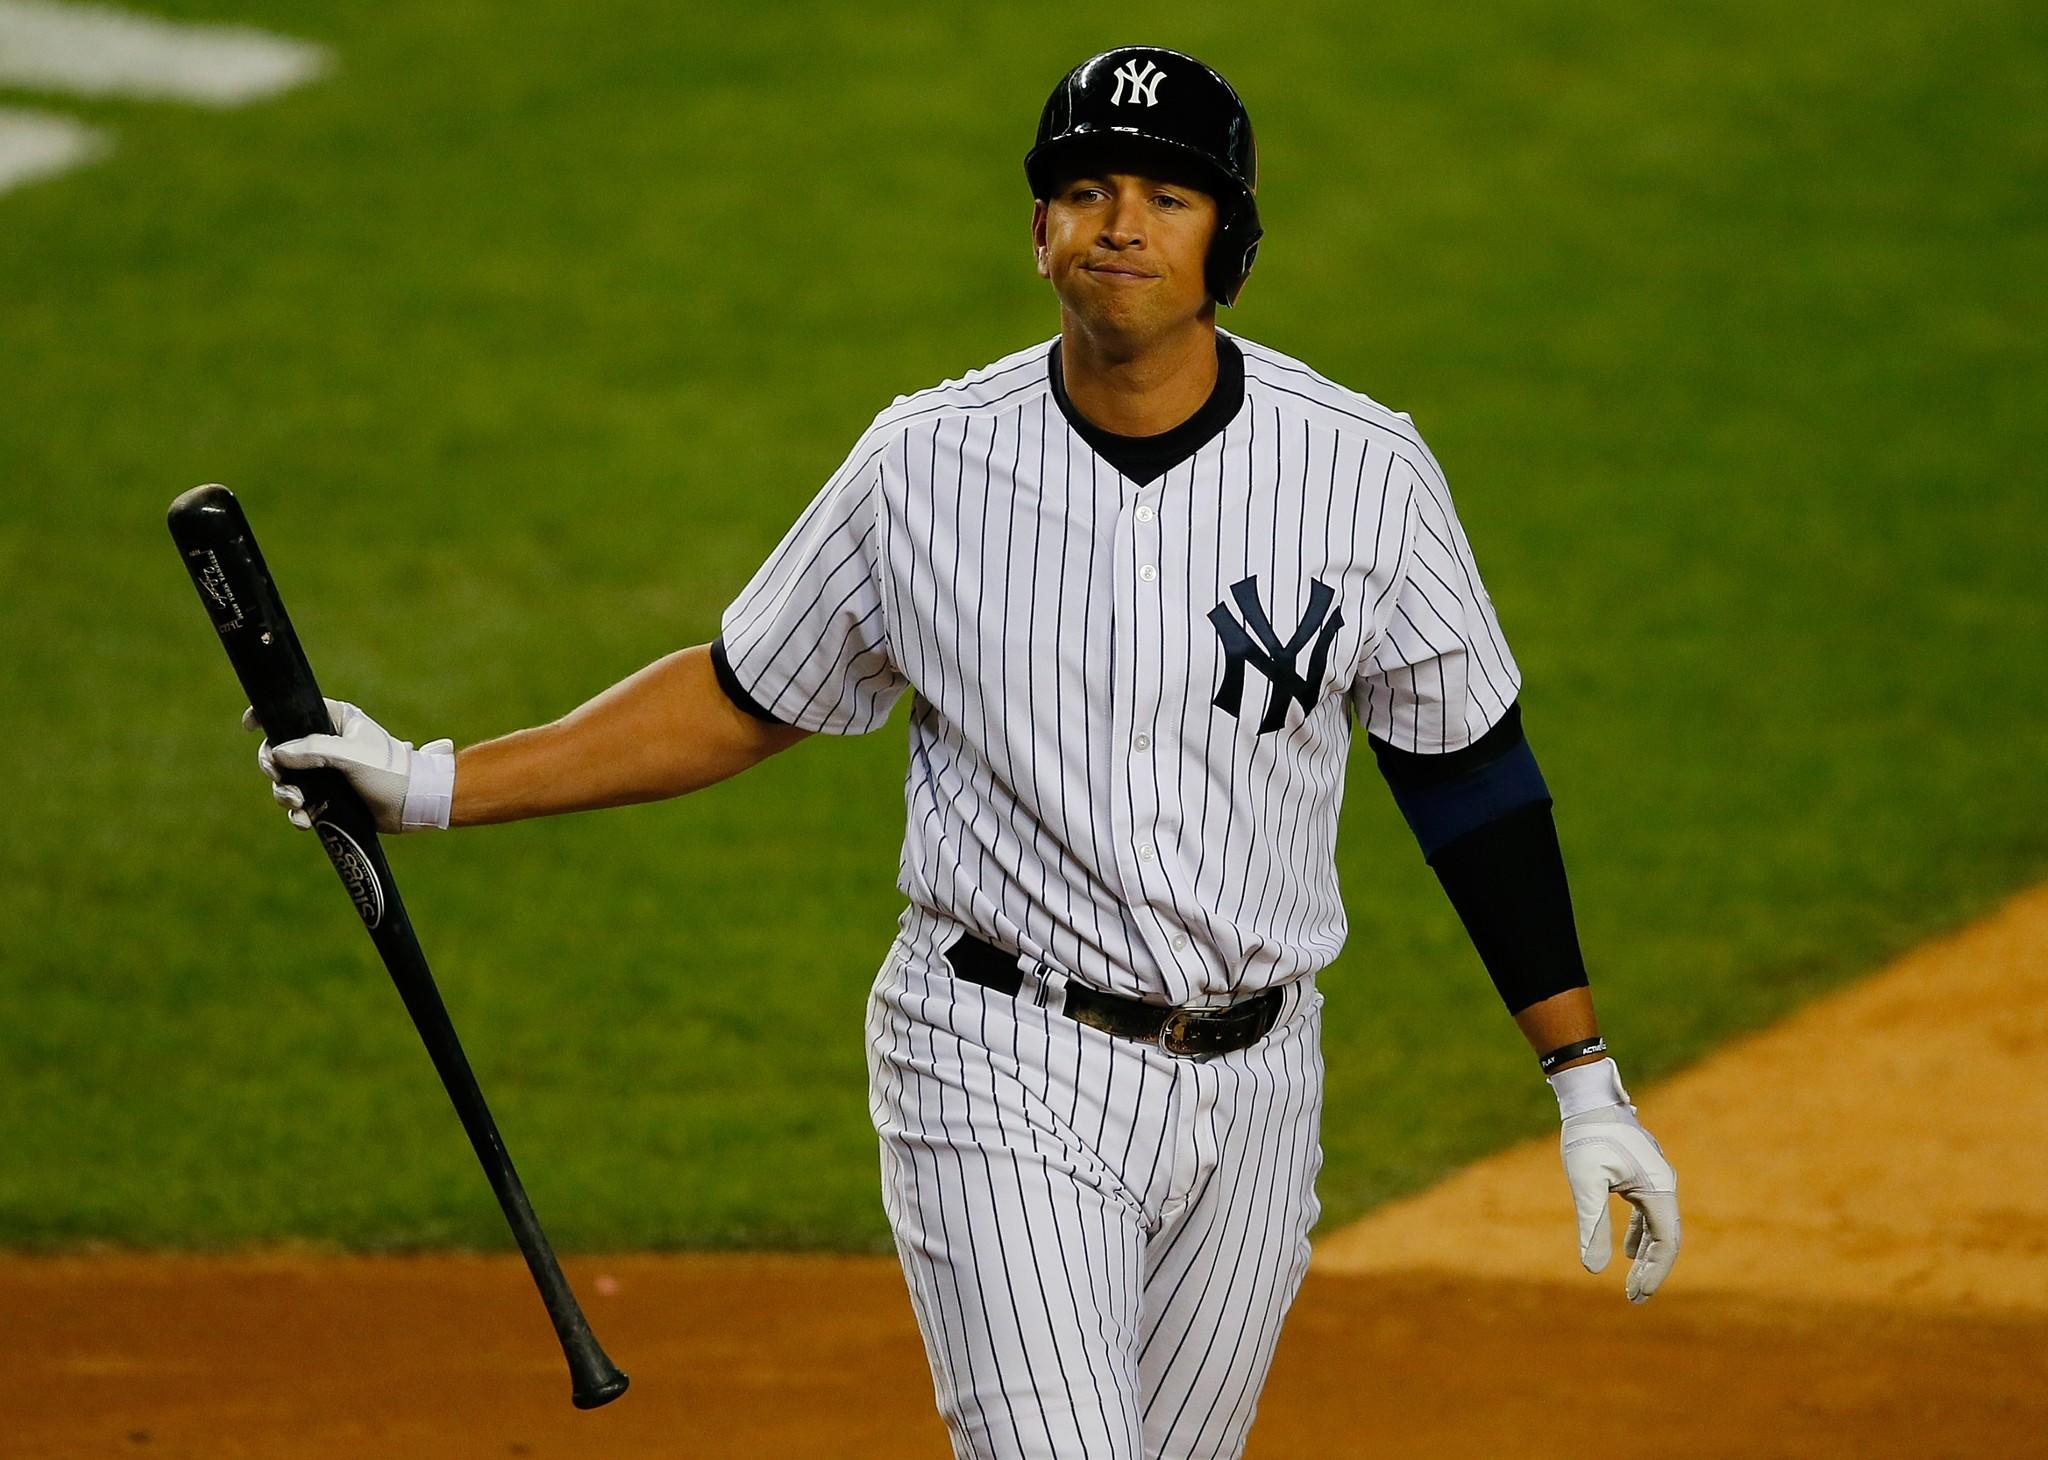 Alex Rodriguez #13 of the New York Yankees reacts after striking out in the fifth inning against the Tampa Bay Rays at Yankee Stadium on September 25, 2013.